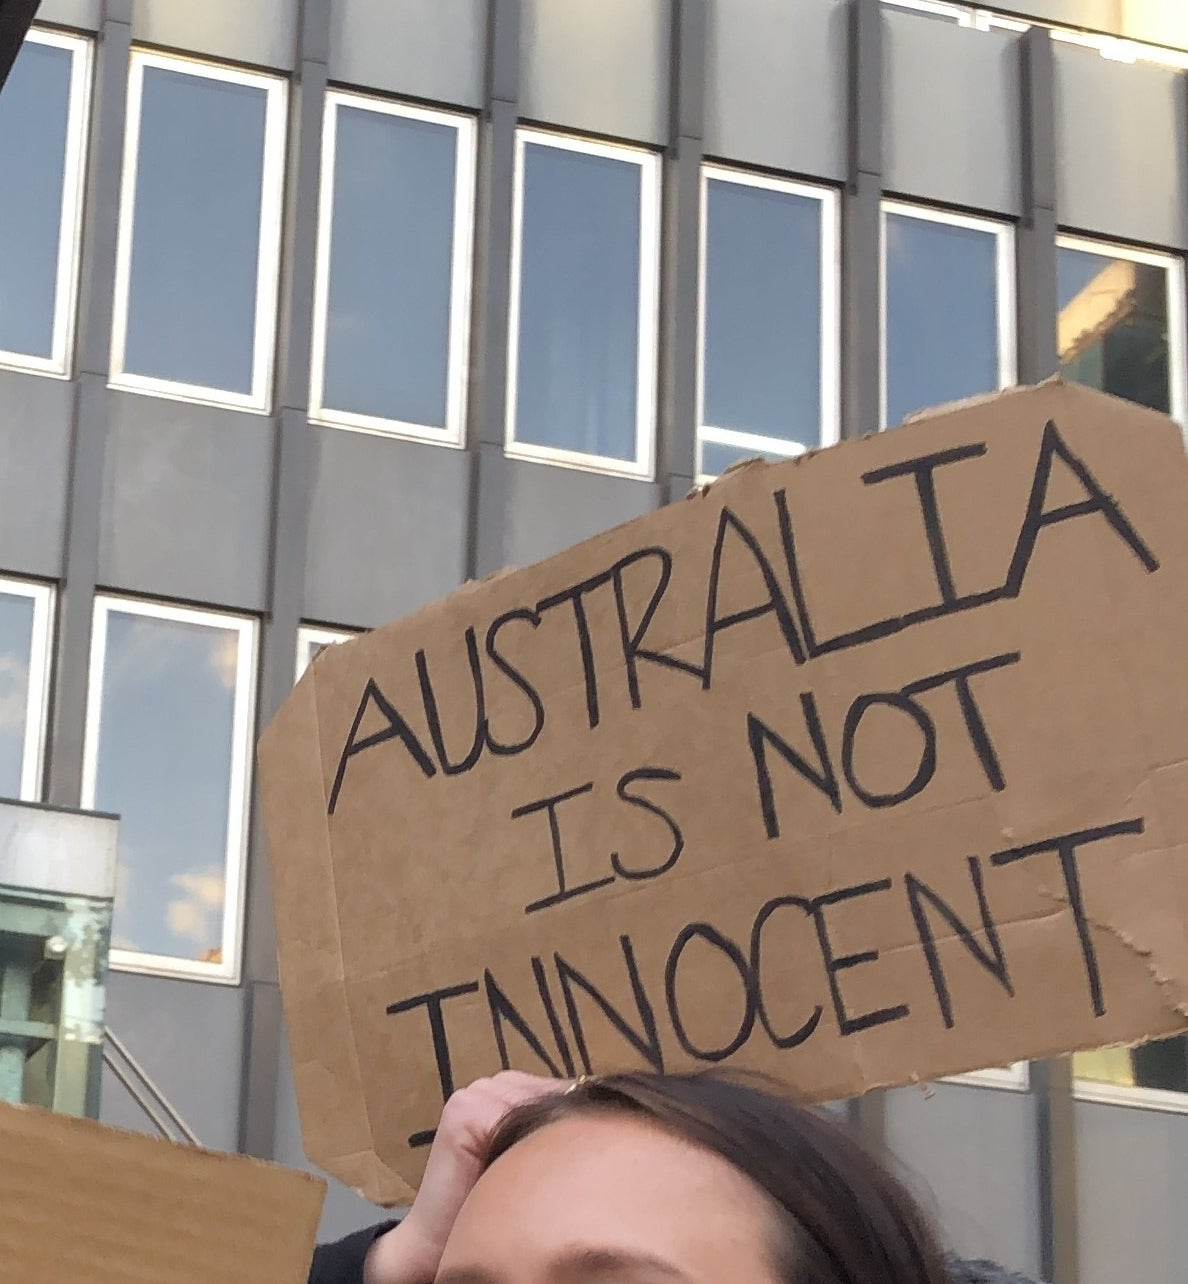 "A protest sign reads ""Australian is not innocent""."